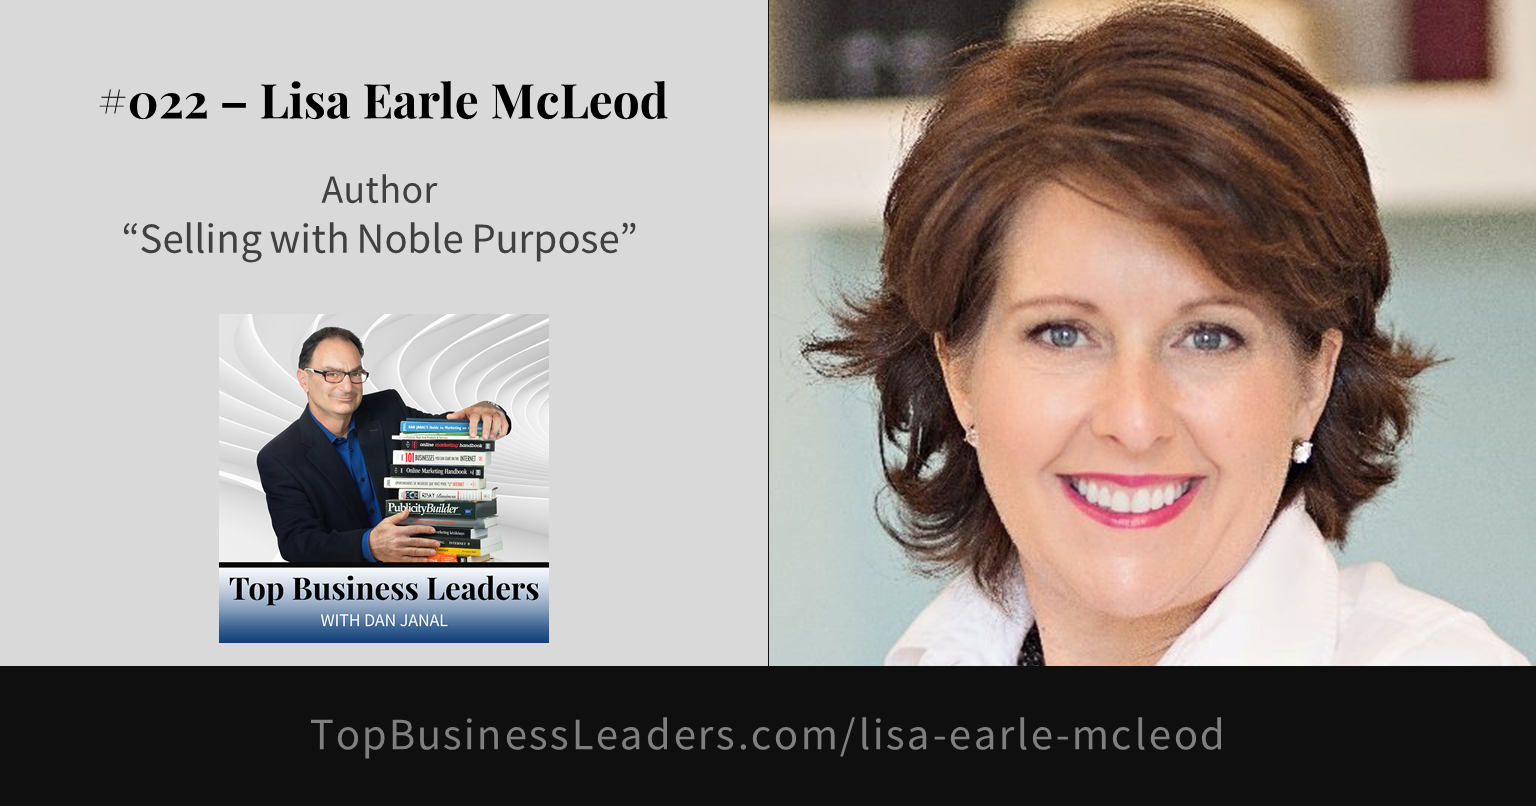 lisa-earle-mcleod-author-selling-with-noble-purpose